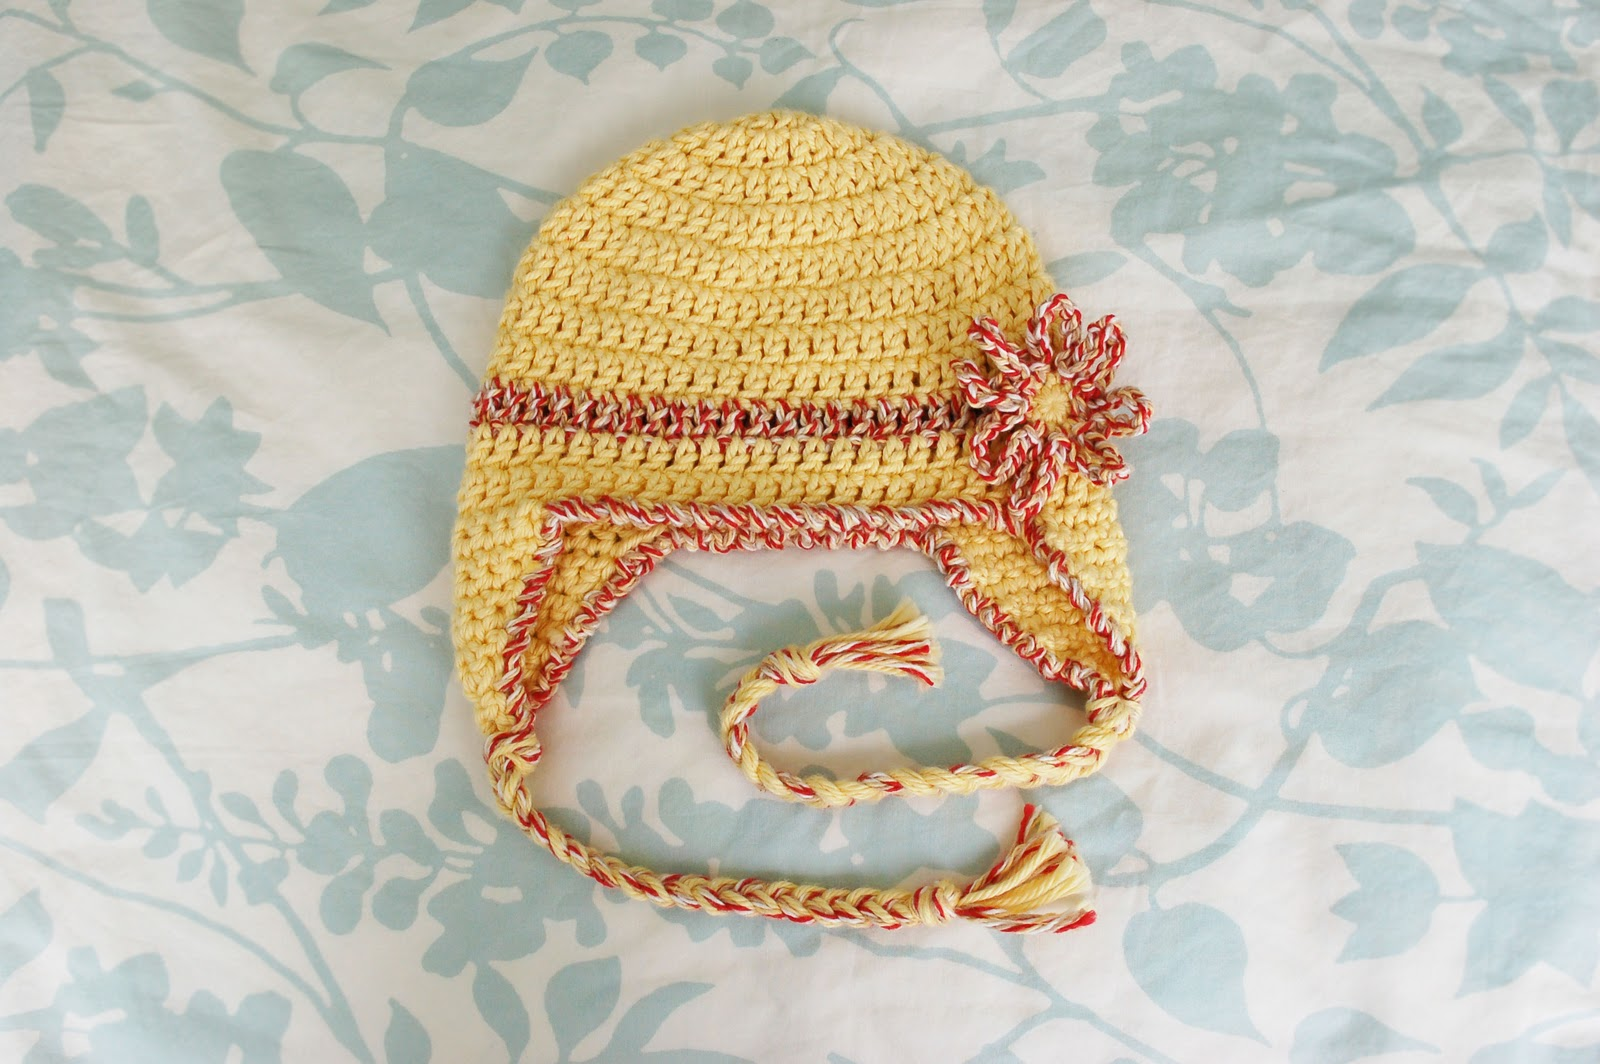 Crochet Pattern For Newborn Hat With Ear Flaps : Alli Crafts: Free Pattern: Baby Earflap Hat - 6 months